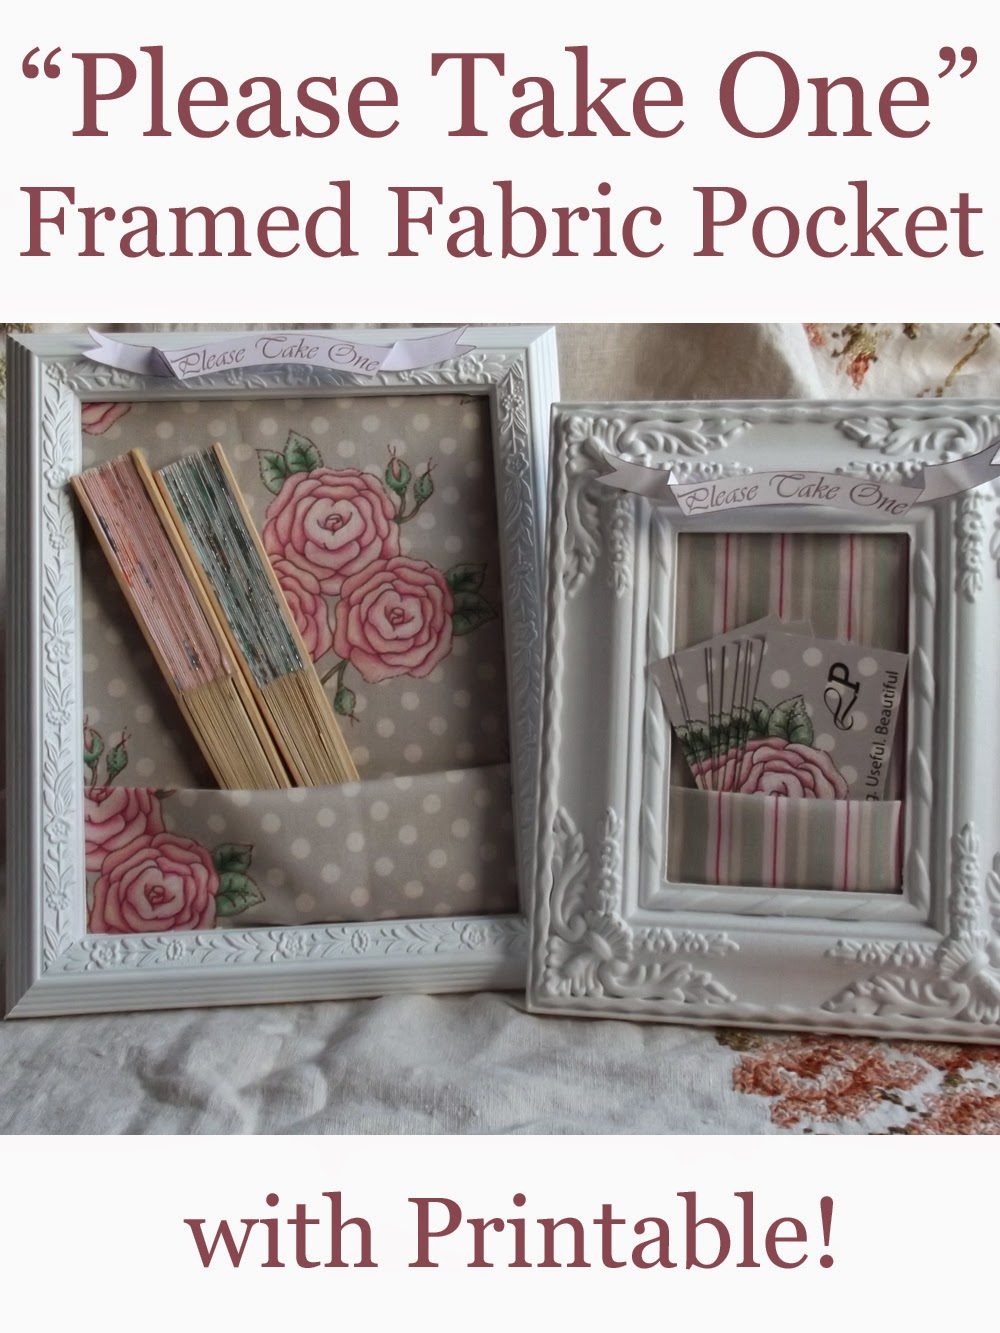 Liliflora pretty make your own spools and framed business card holder shabby chic craft ribbon lace spools pins fabric pockets folded frames fans please take one business card holder colourmoves